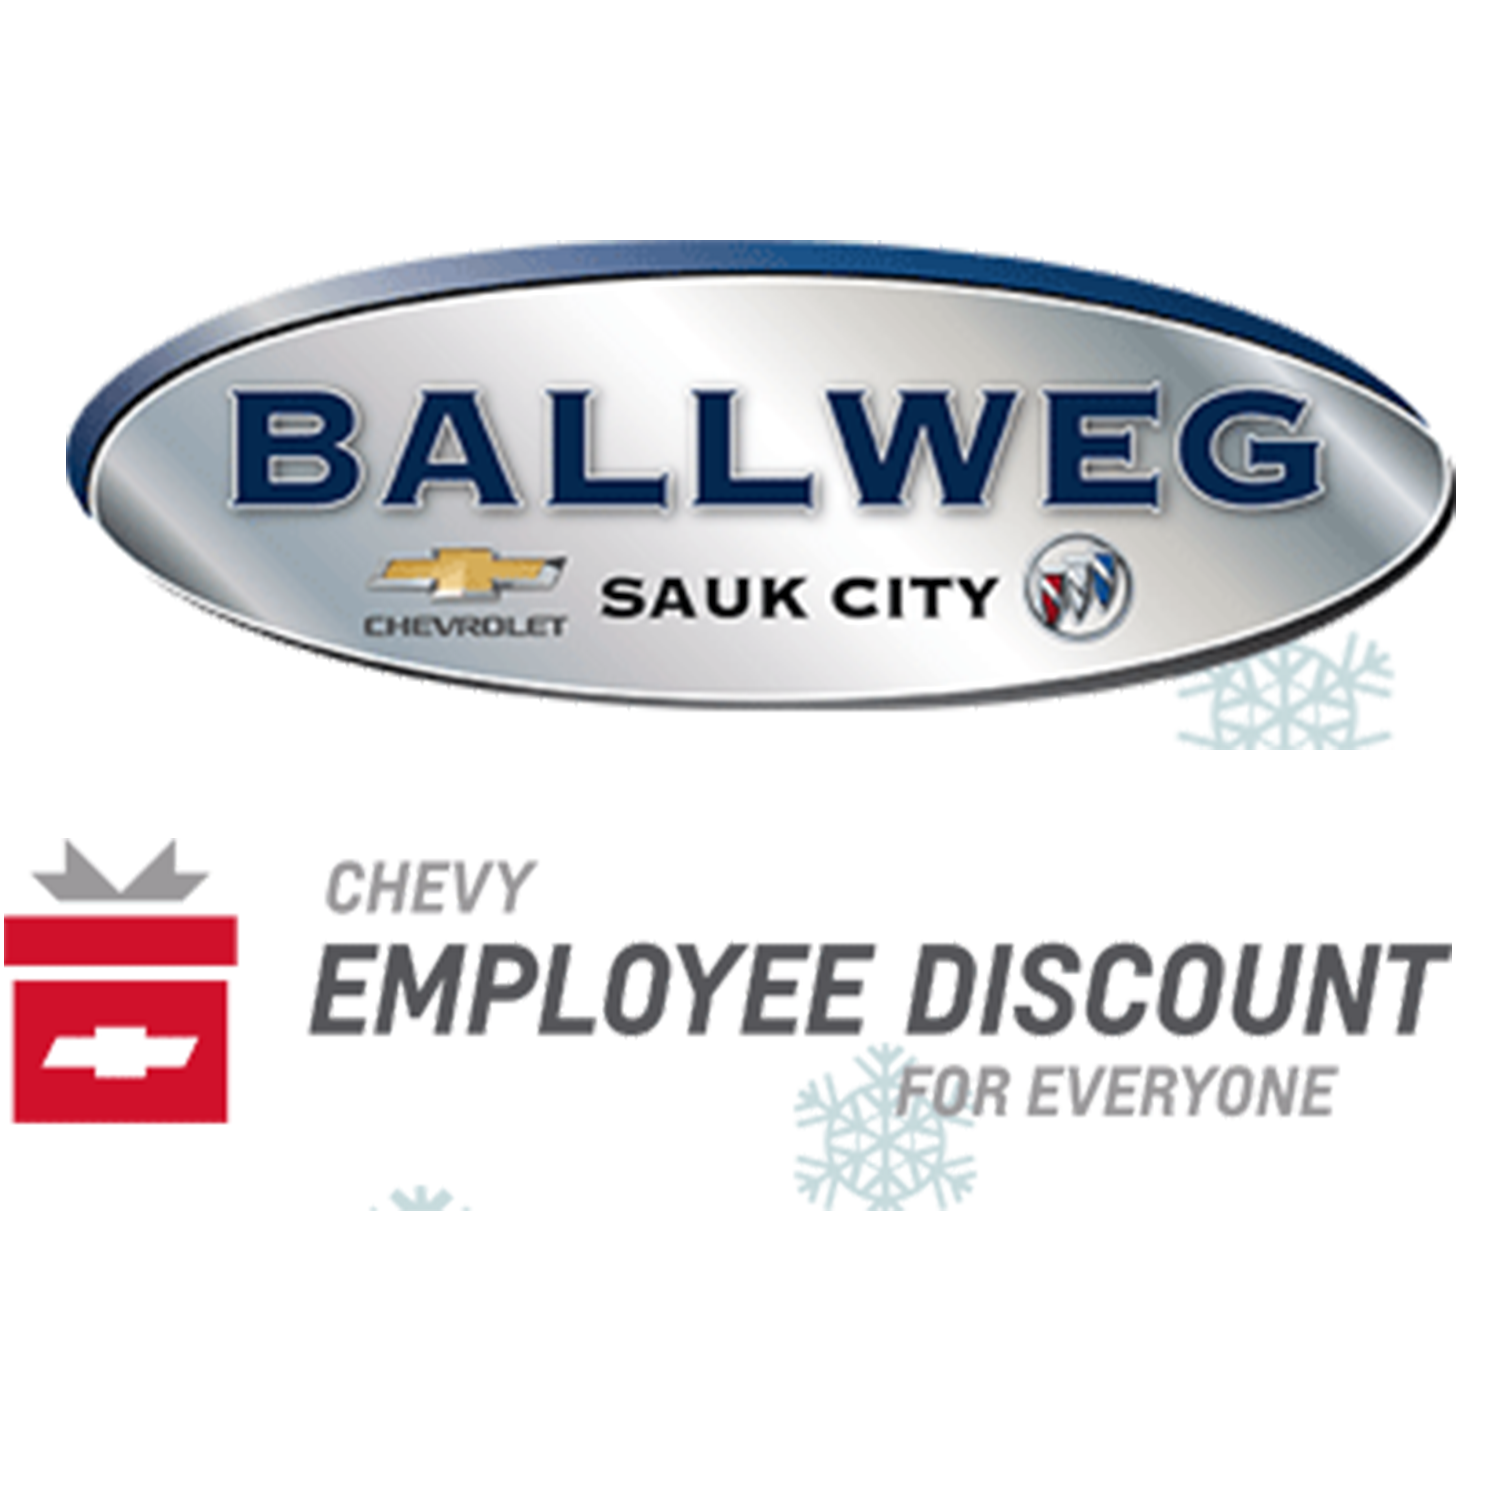 Ballweg Chevy Employee Discount